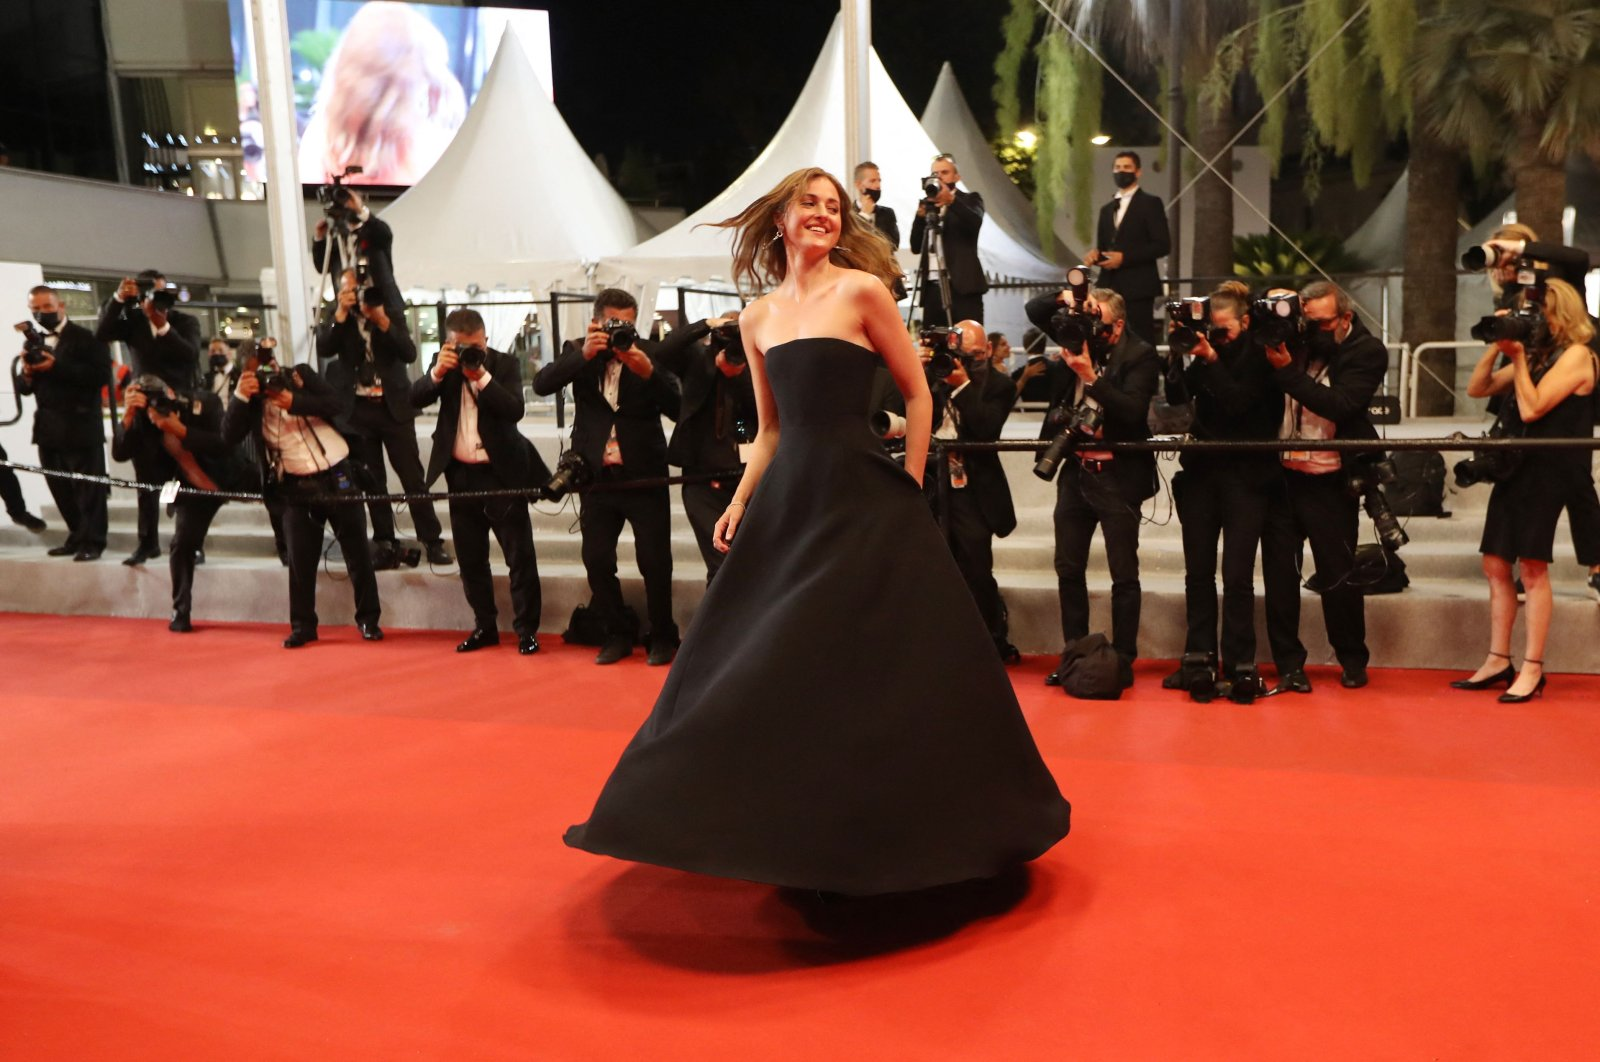 """Norwegian actress Renate Reinsve dances as she arrives for the screening of the film """"Verdens Verste Menneske"""" (The Worst Person In The World) at the 74th Cannes Film Festival in Cannes, France, July 8, 2021. (AFP Photo)"""